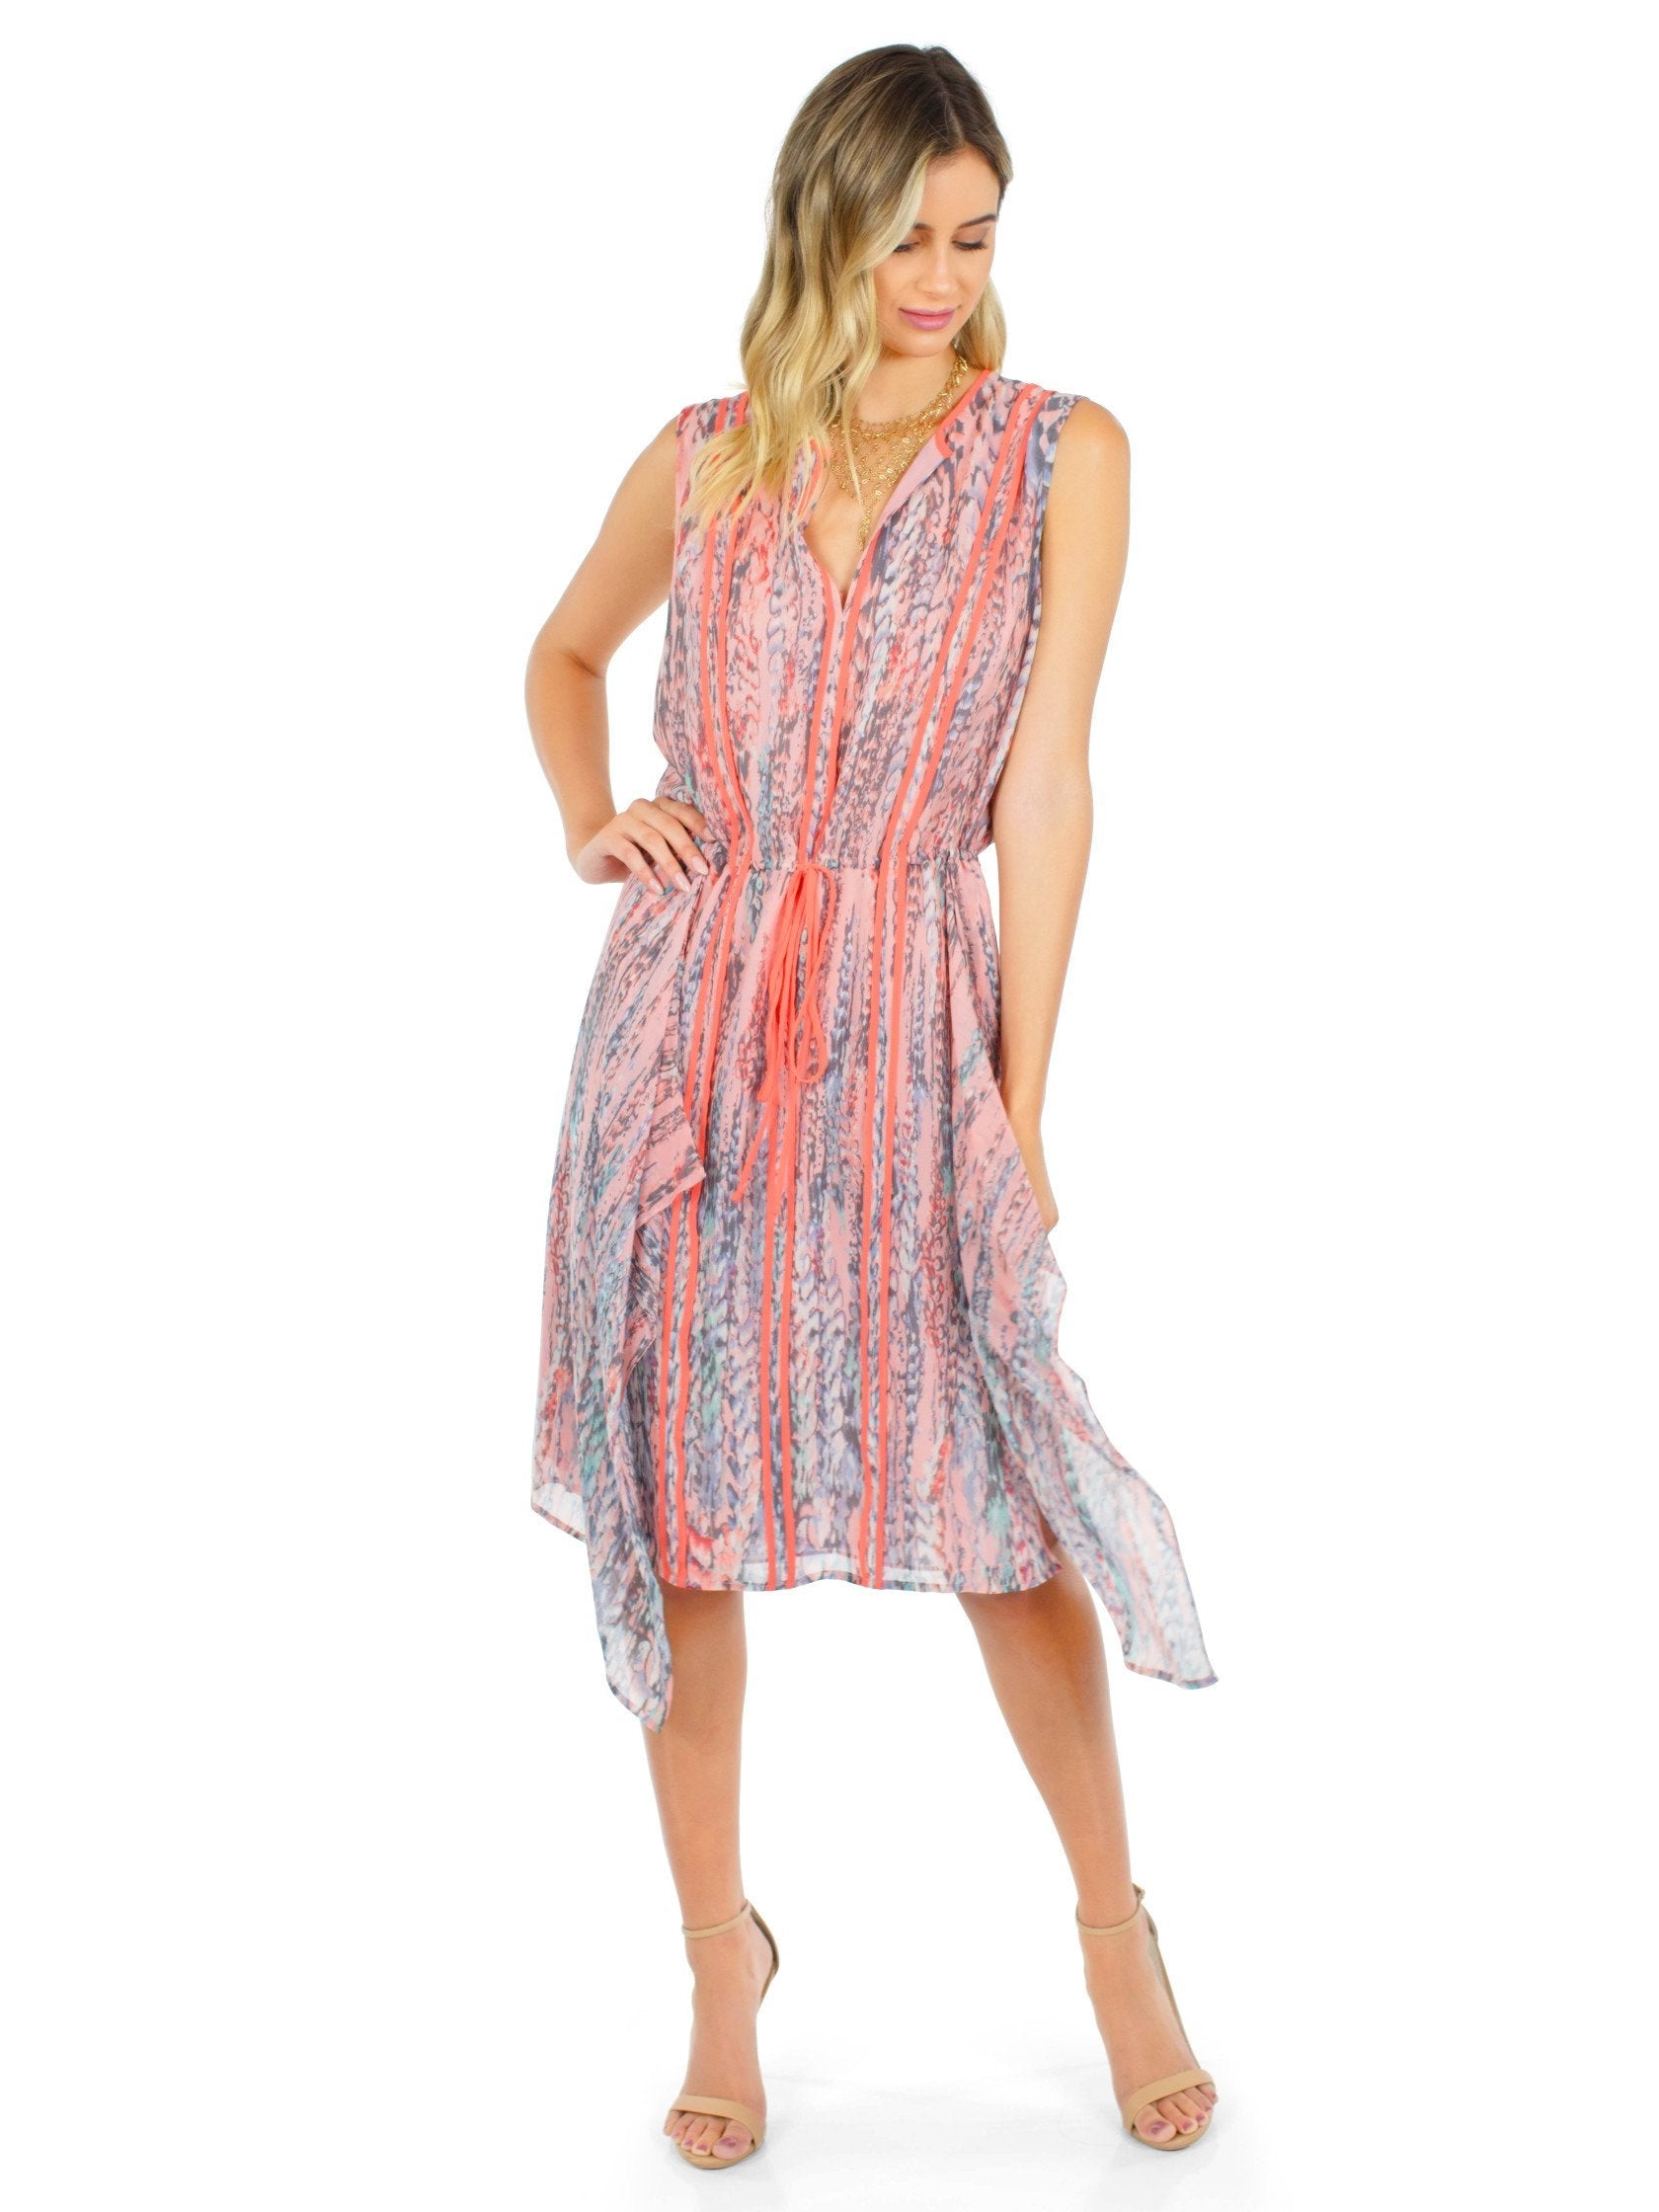 5c55e75c1 bcbgmaxazria-liya-print-blocked-draped-dress-FashionPass-2.jpg?v=1512679386